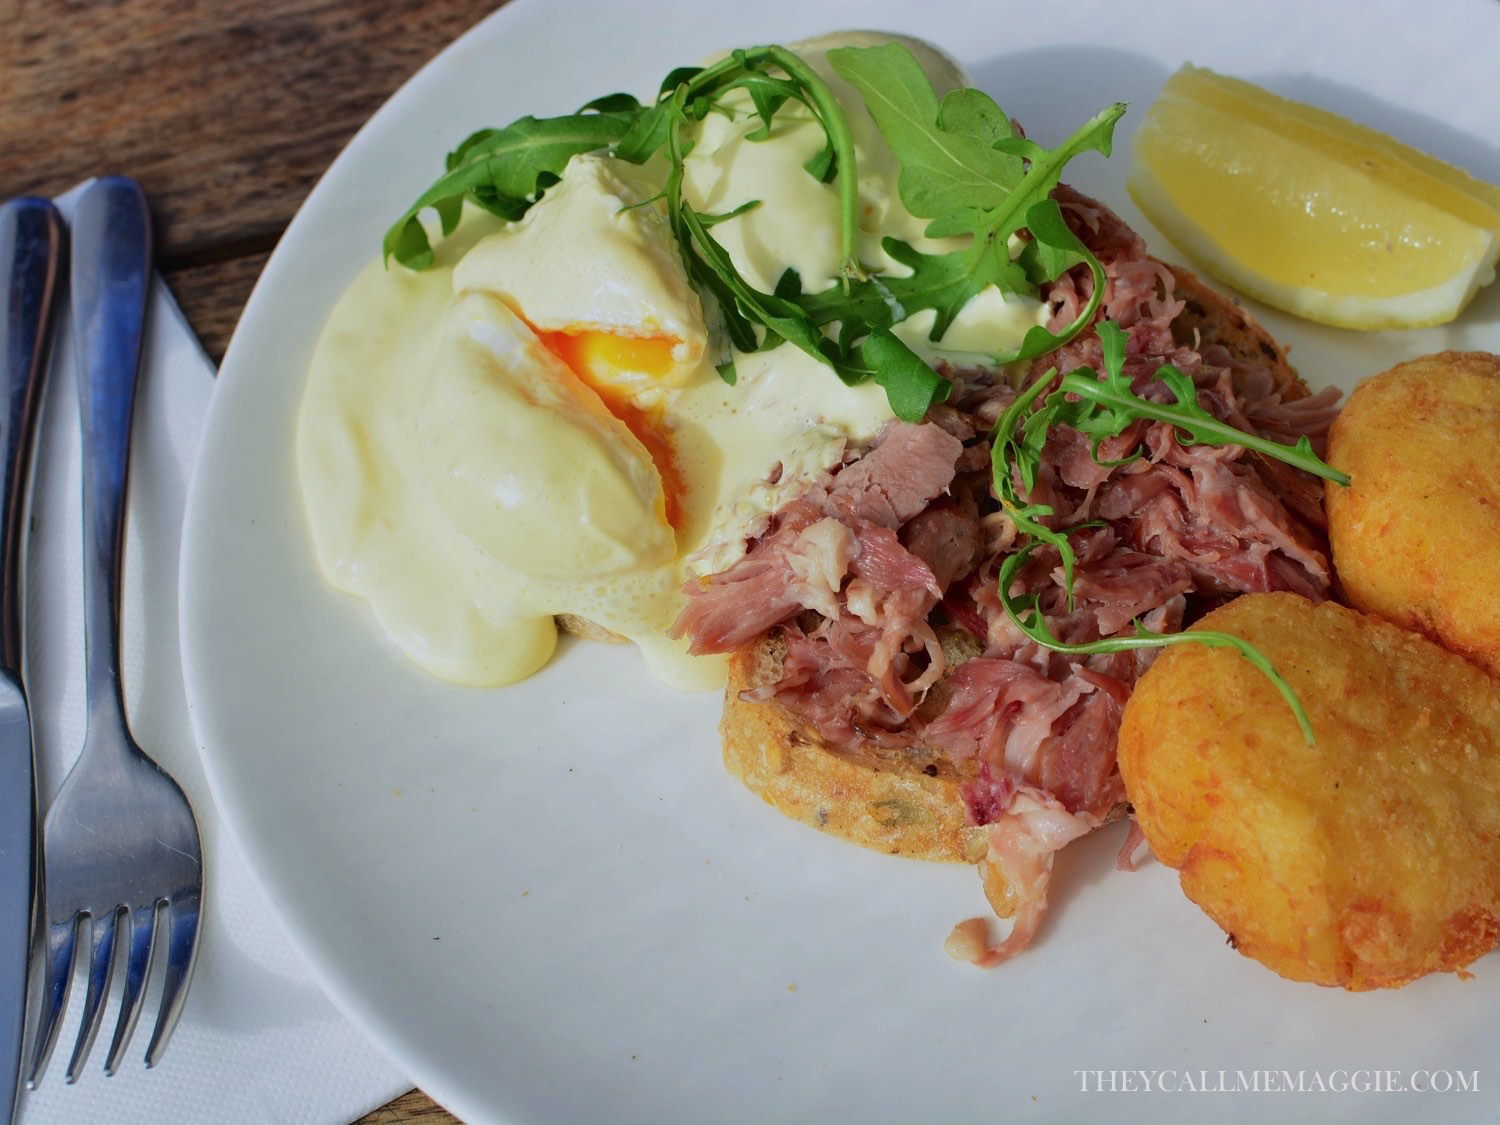 Eggs benedict with pulled ham hock, poached eggs, apple cider hollandaise and potato hash.